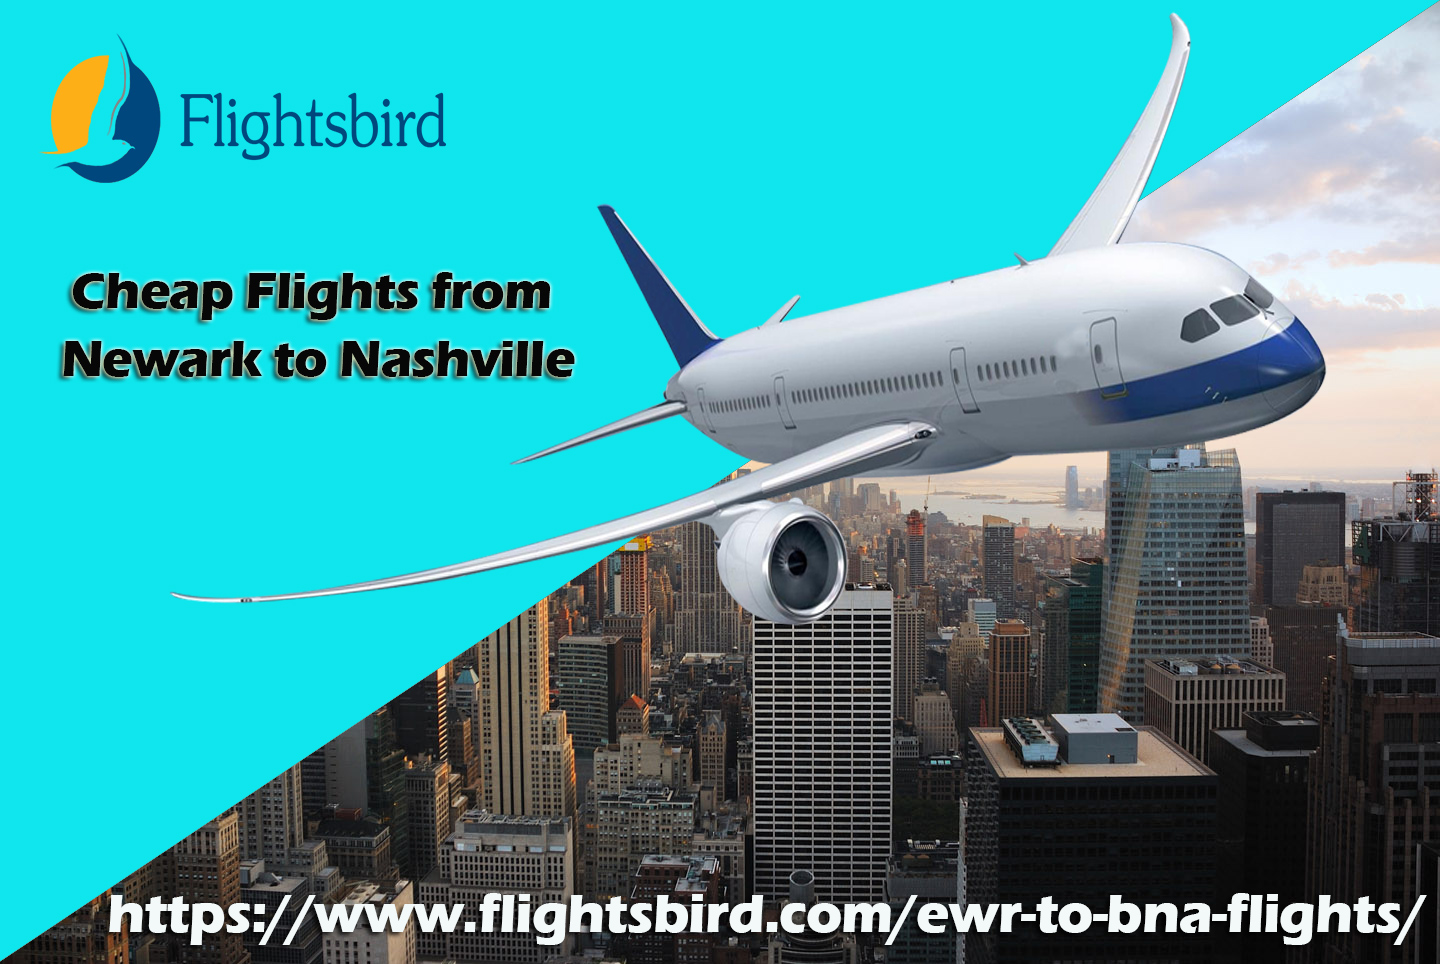 Find cheap flights from Newark (EWR) to Nashville (BNA)